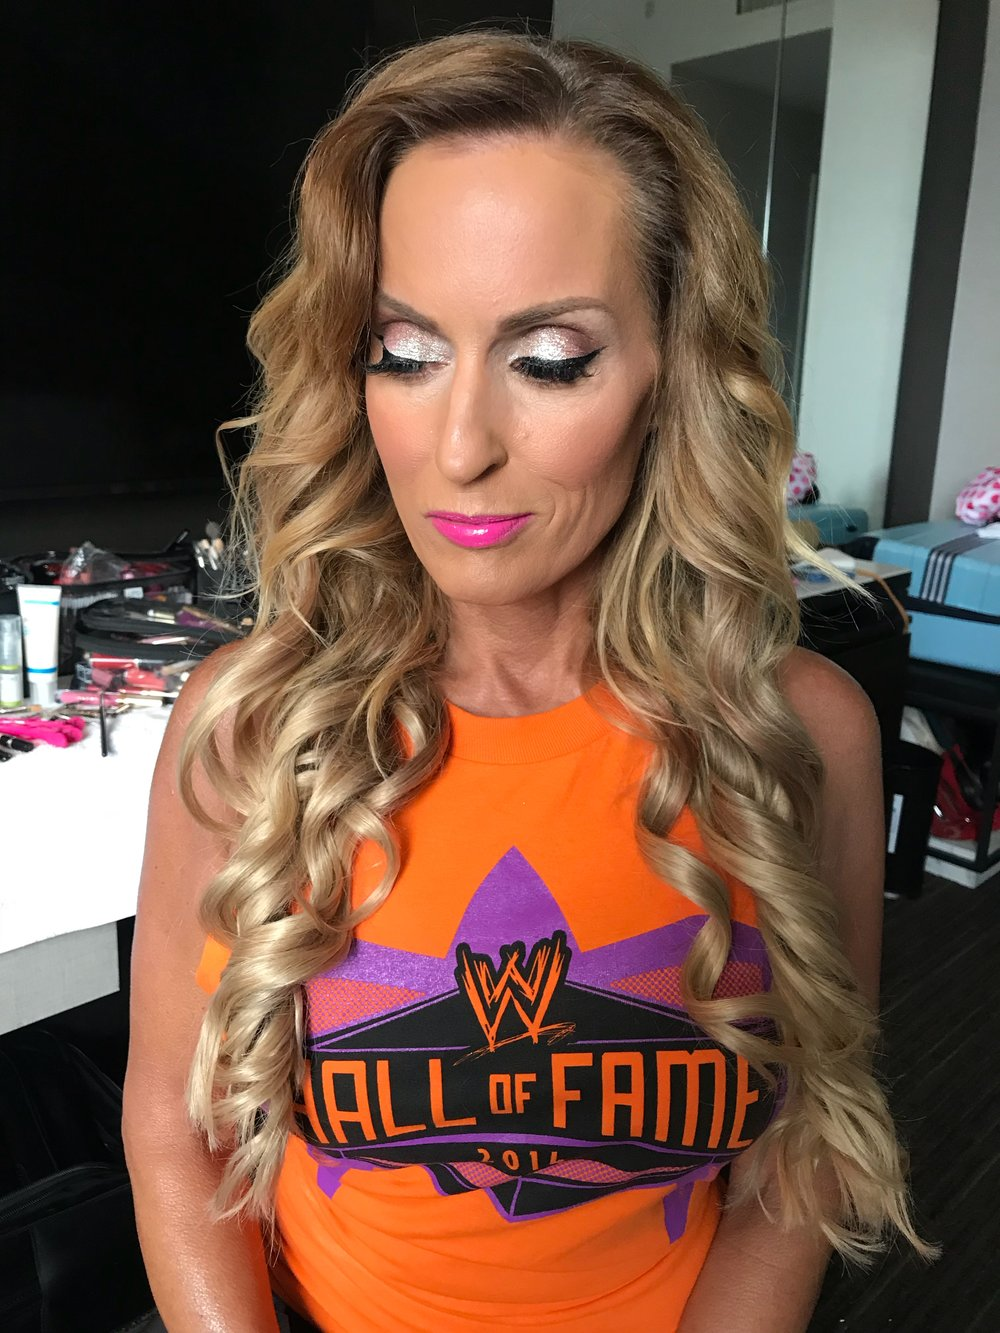 Dana Warrior WWE  (Hair and Makeup)